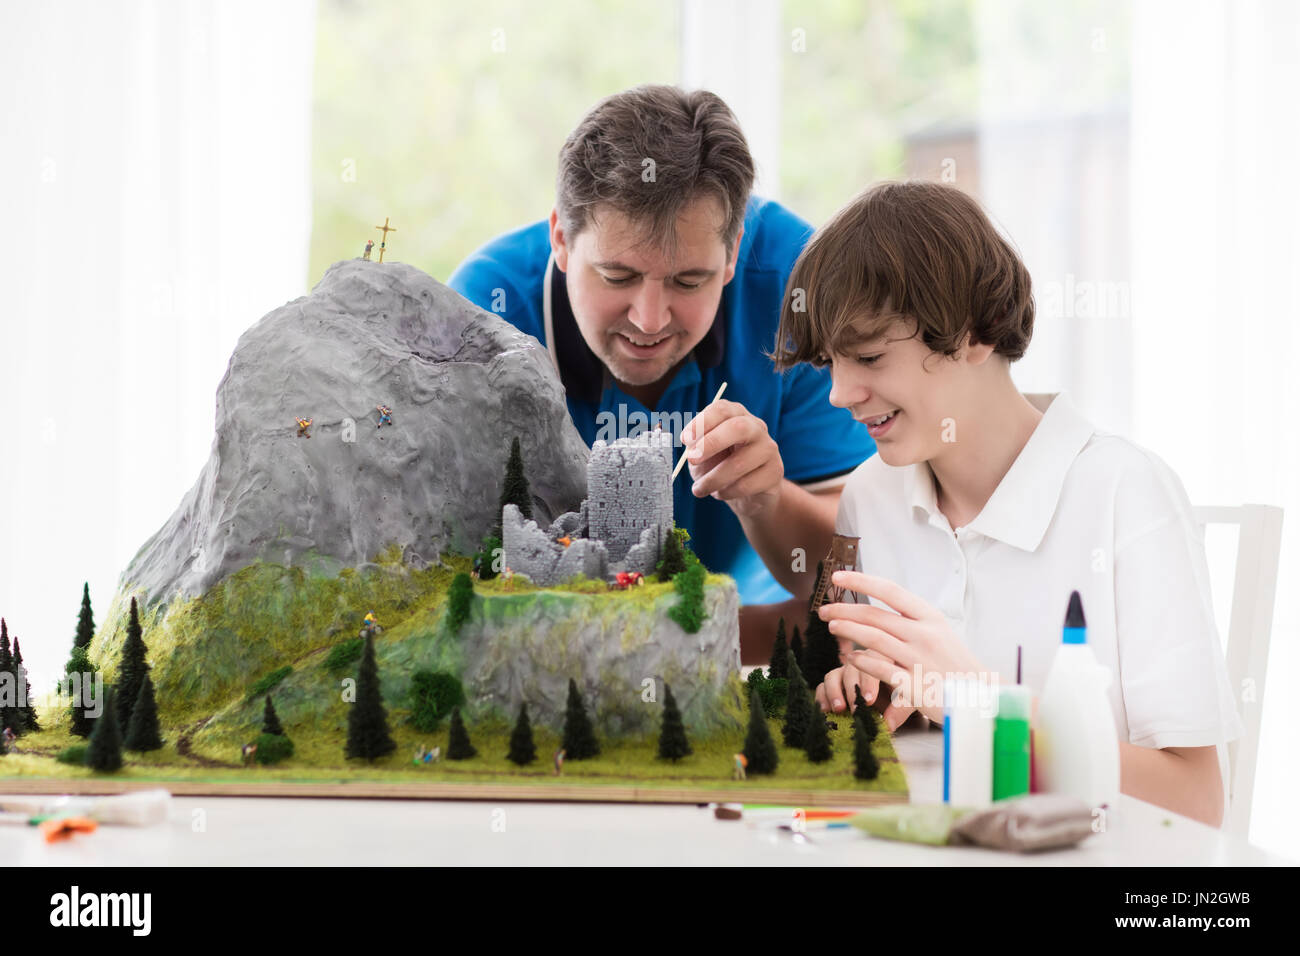 Father and son work on model building school project. Kids and parent build miniature scale model mountain for geography class. Extracurricular activi - Stock Image